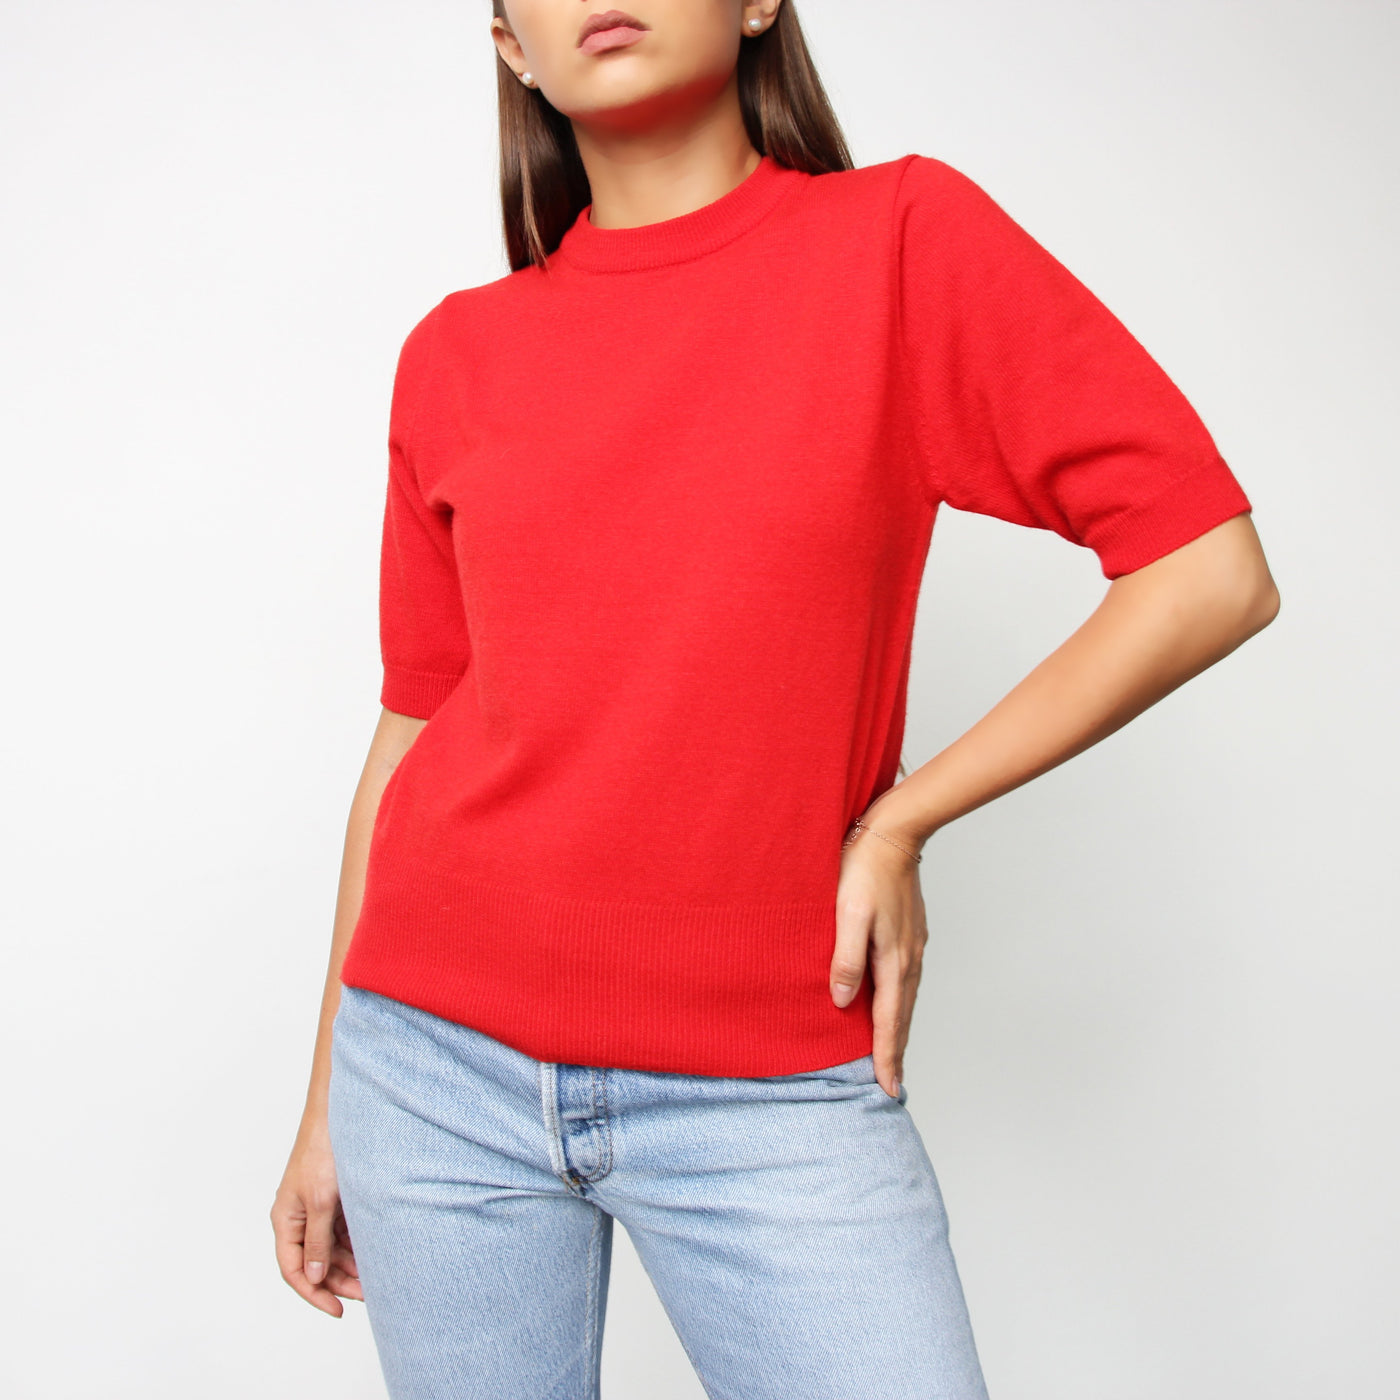 Red Short Sleeve Knit Top - Marble Hive